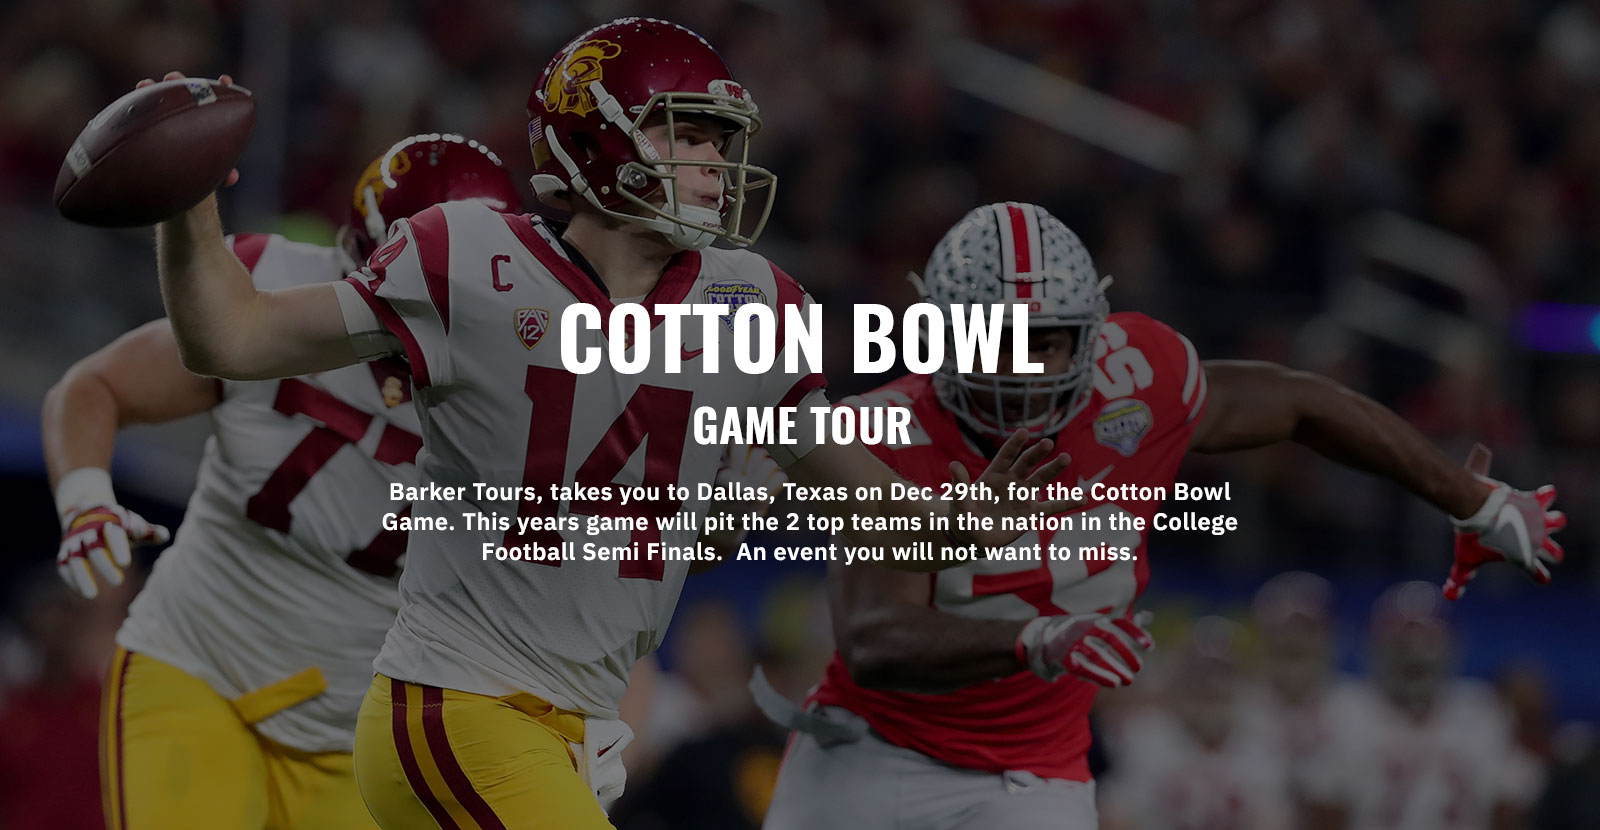 Cotton Bowl Tours